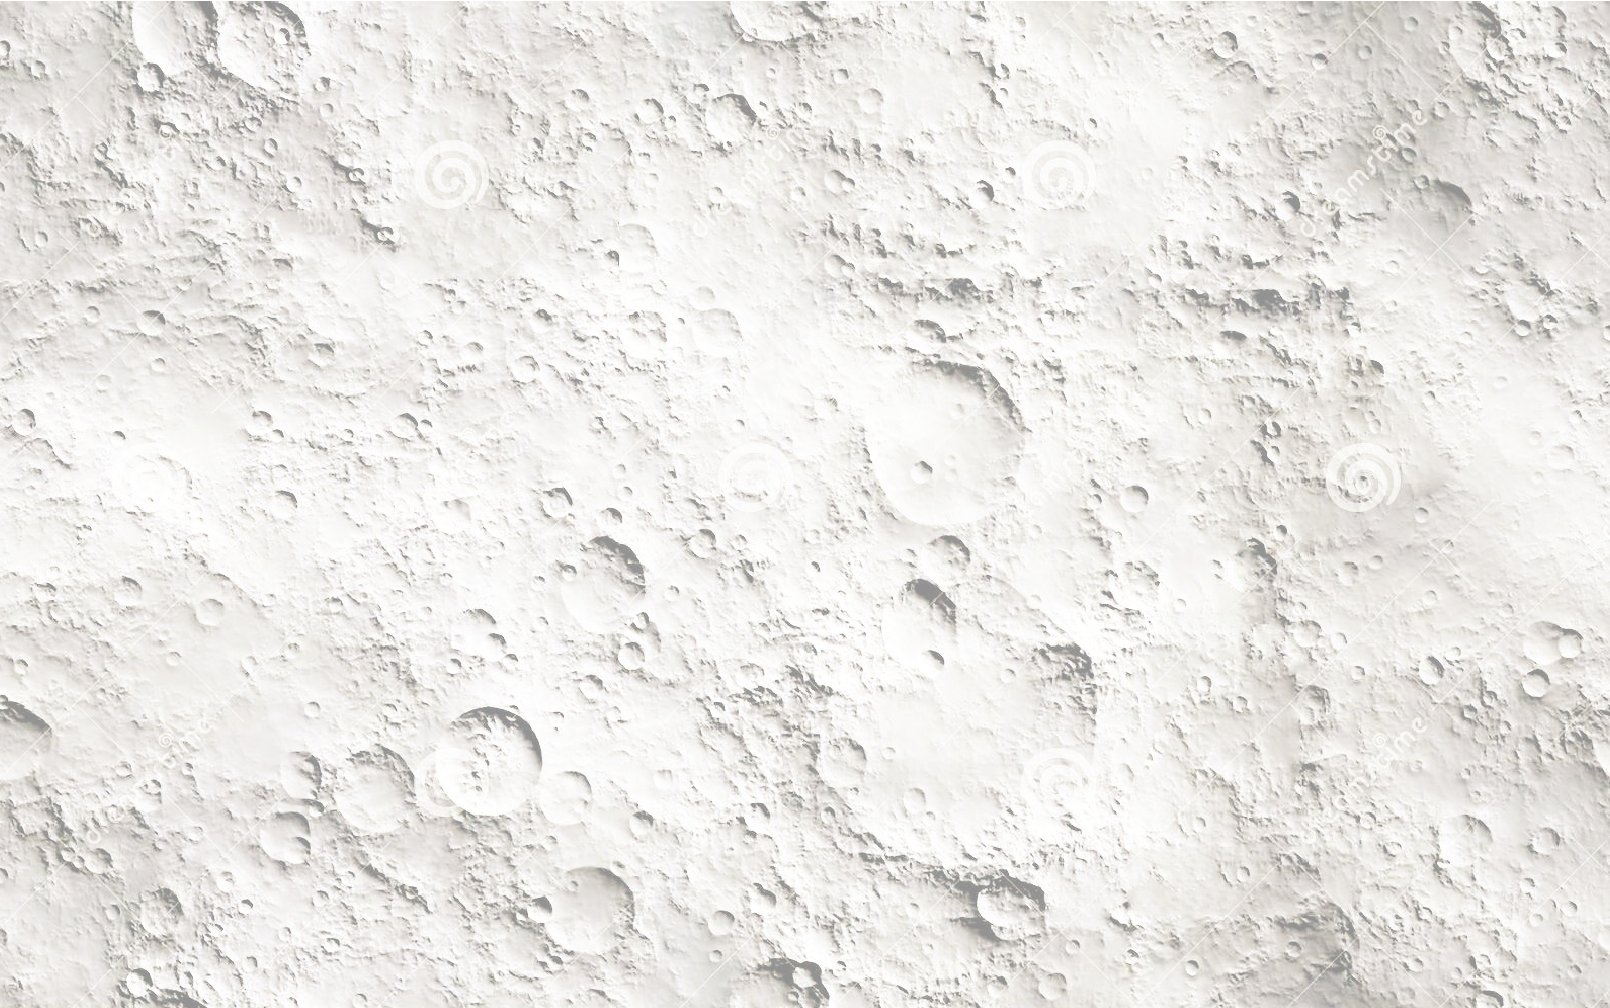 close up image of the moon showing craters